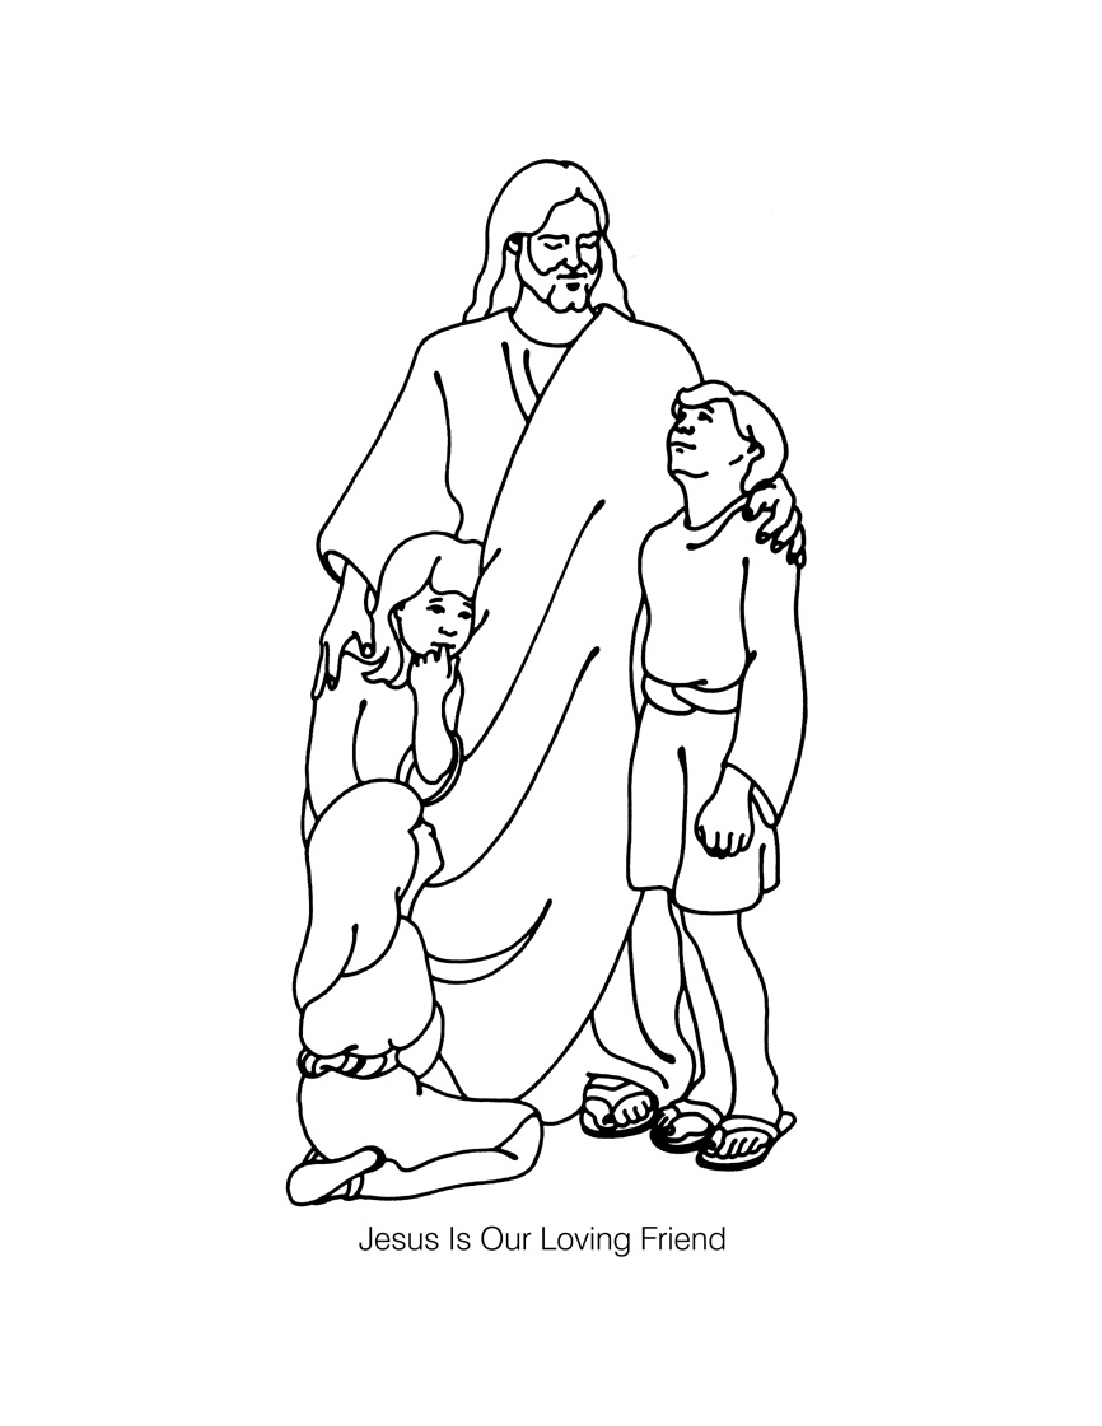 Jesus loves children coloring pages Coloring Pages